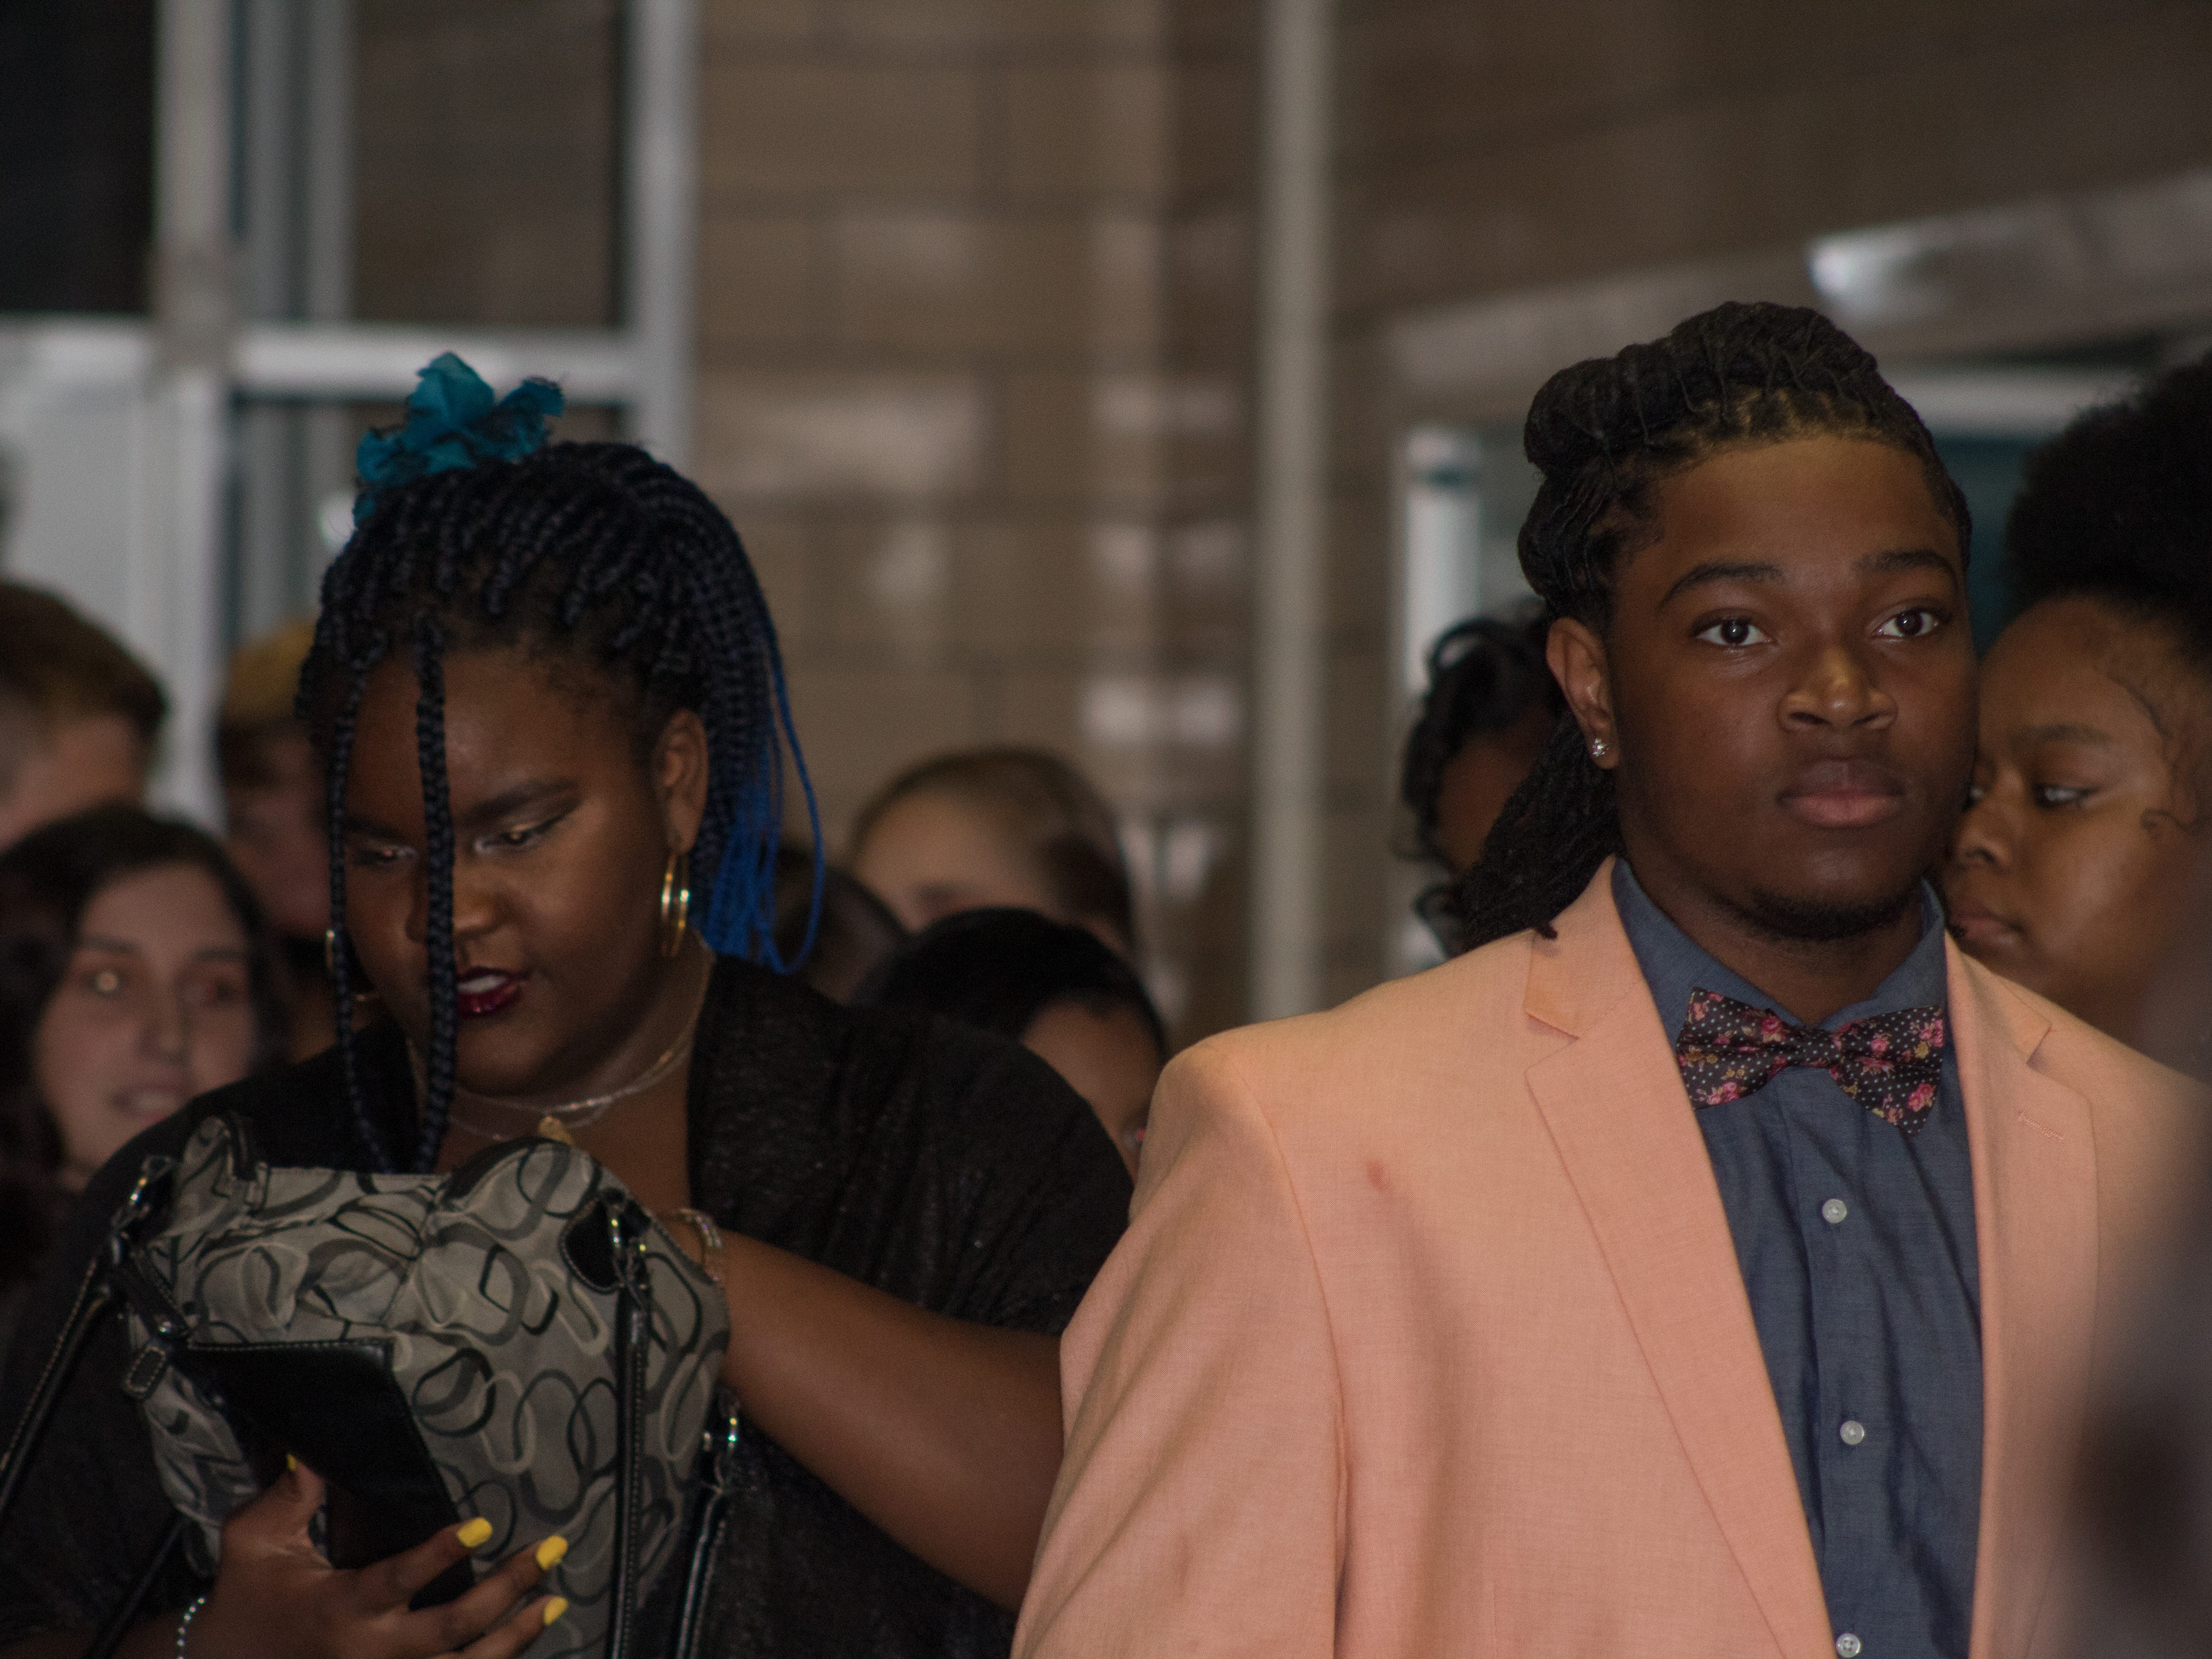 Wicomico High School held its Homecoming Dance Saturday, Oct. 27, 2018. The theme was Blue and Gold. Tyairra Sheppard and Khalil Evans were crowned the Homecoming Queen and King.